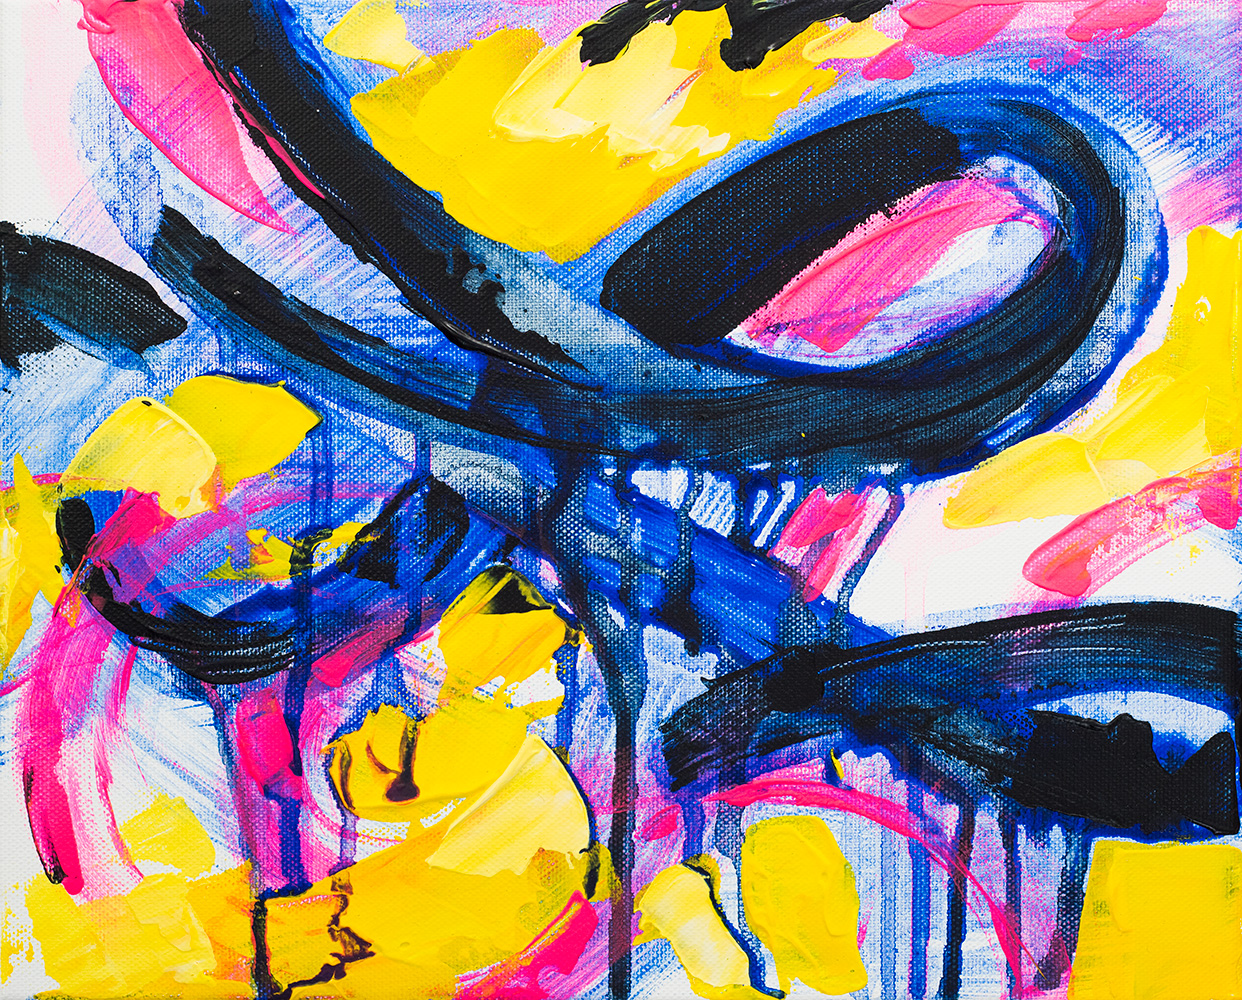 "Franziska Schwade - Daily Painting 151023 ""Neon Infinity"" Acrylics on stretched canvas 24x30 cm / 9.4x11.8 inch"